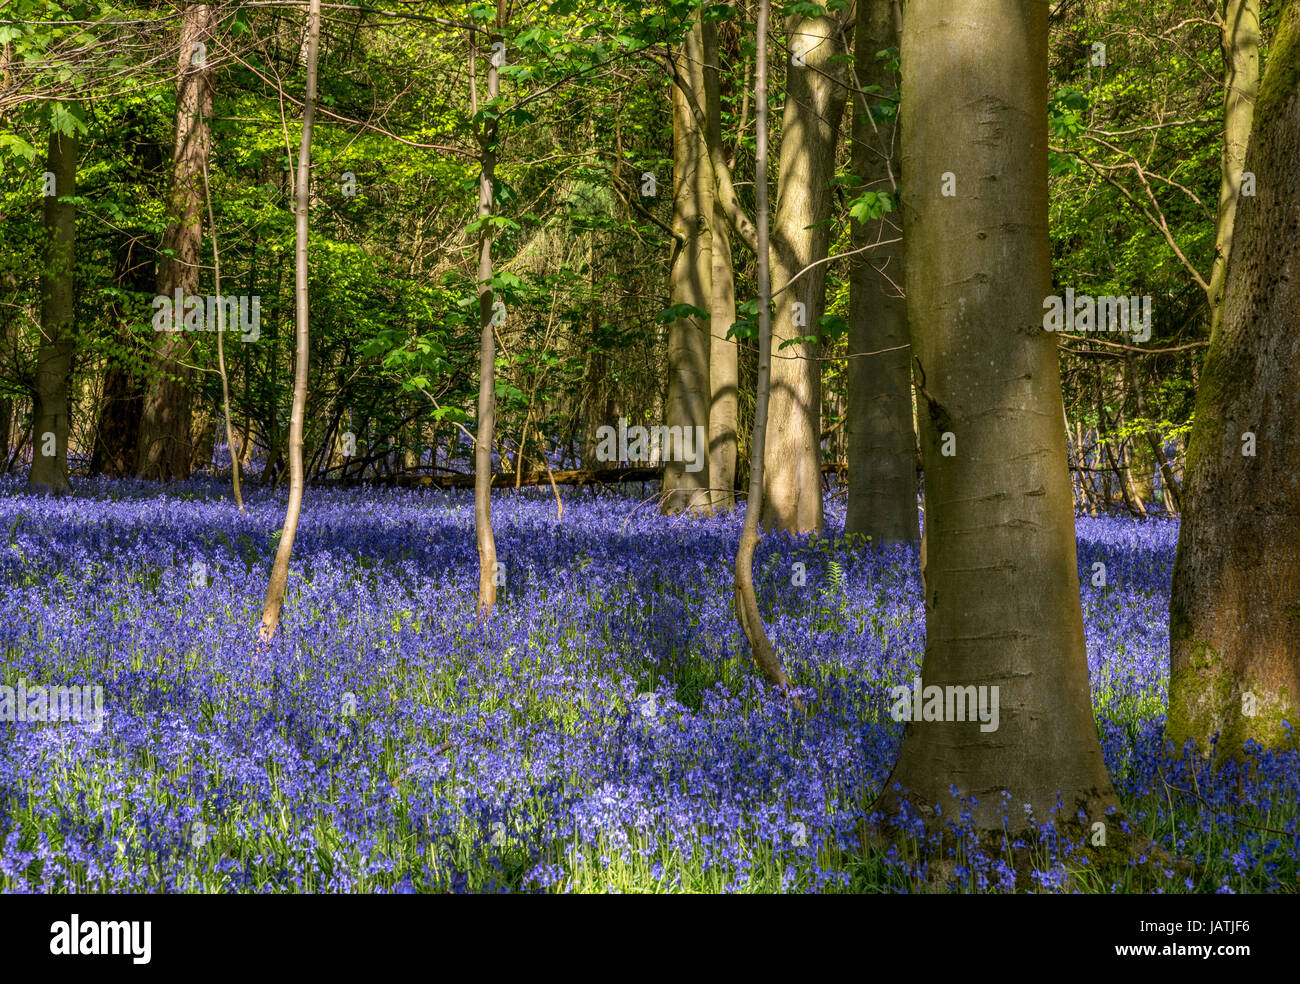 Bluebell wood in full bloom on a sunny spring day Stock Photo